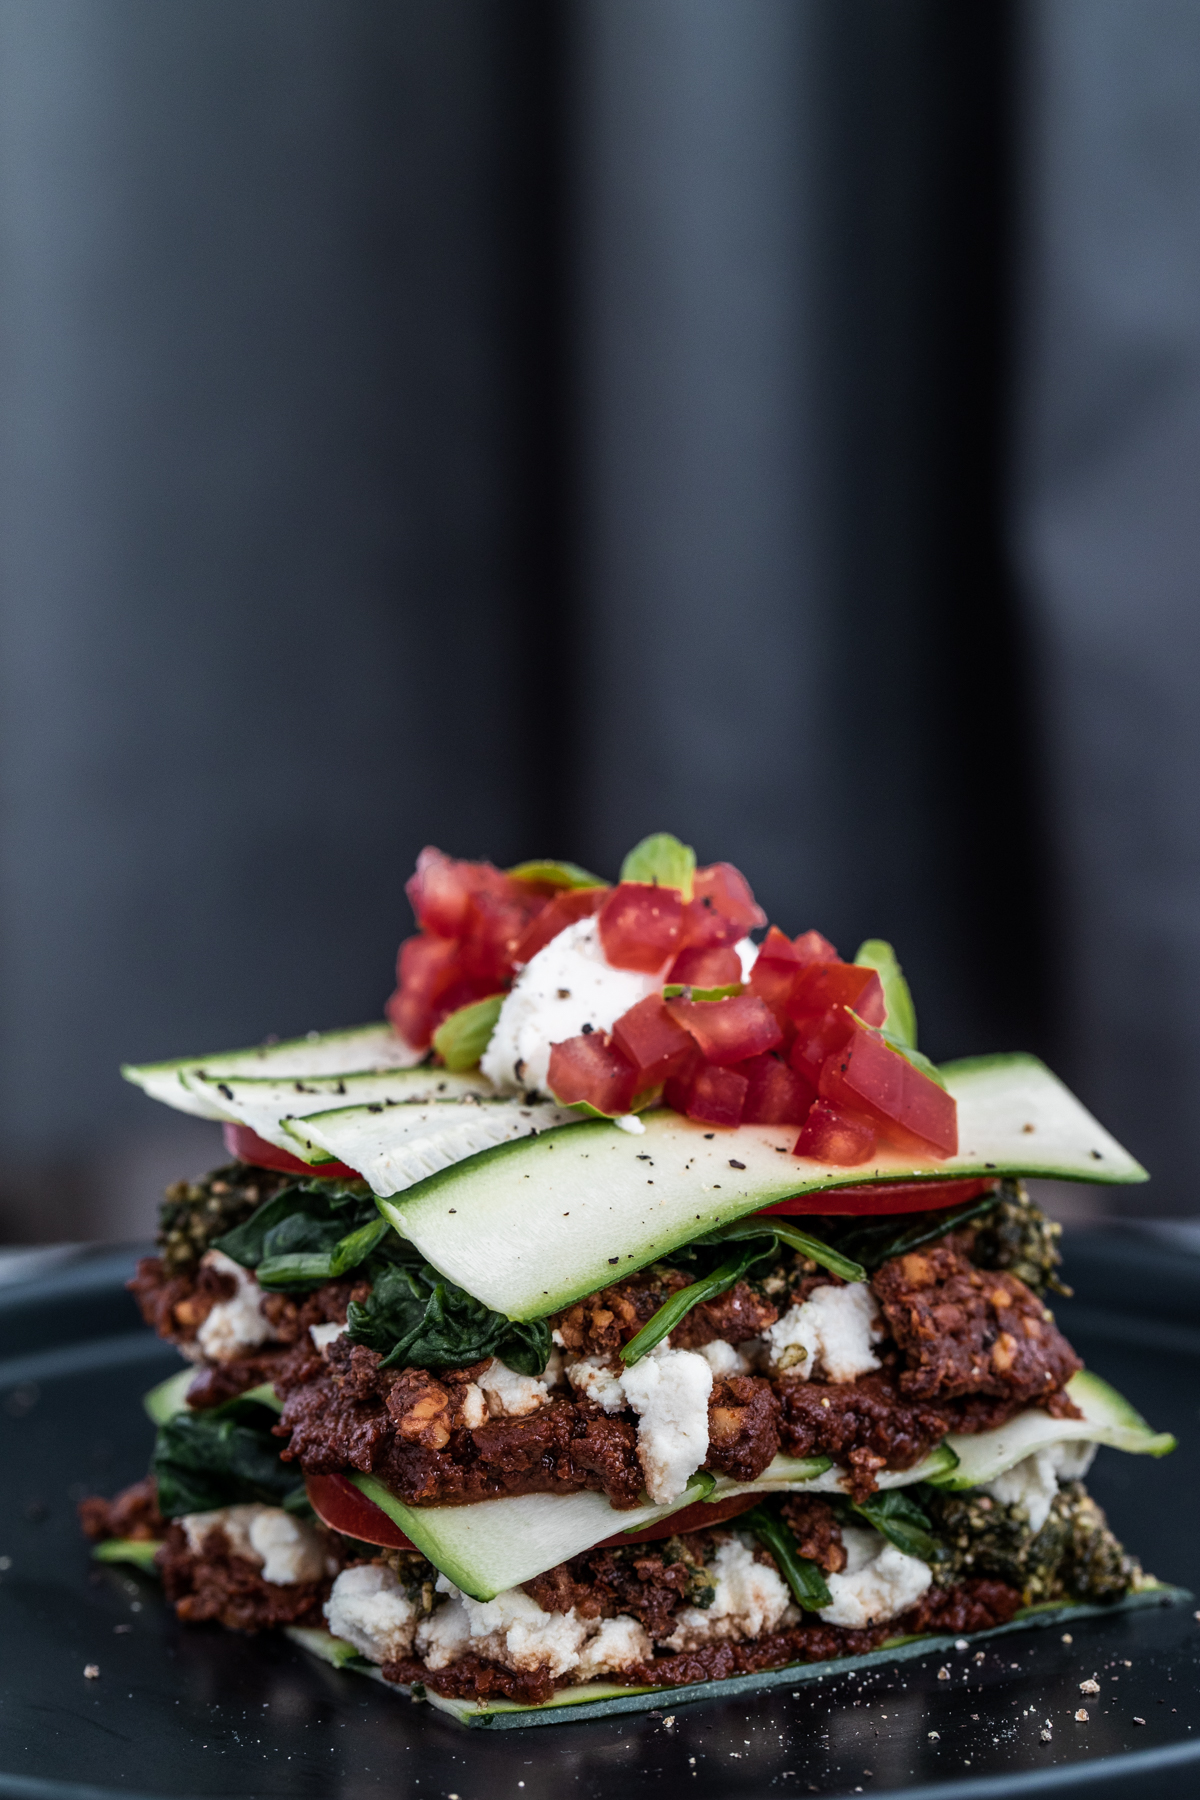 Raw vegan lasagne on a black plate